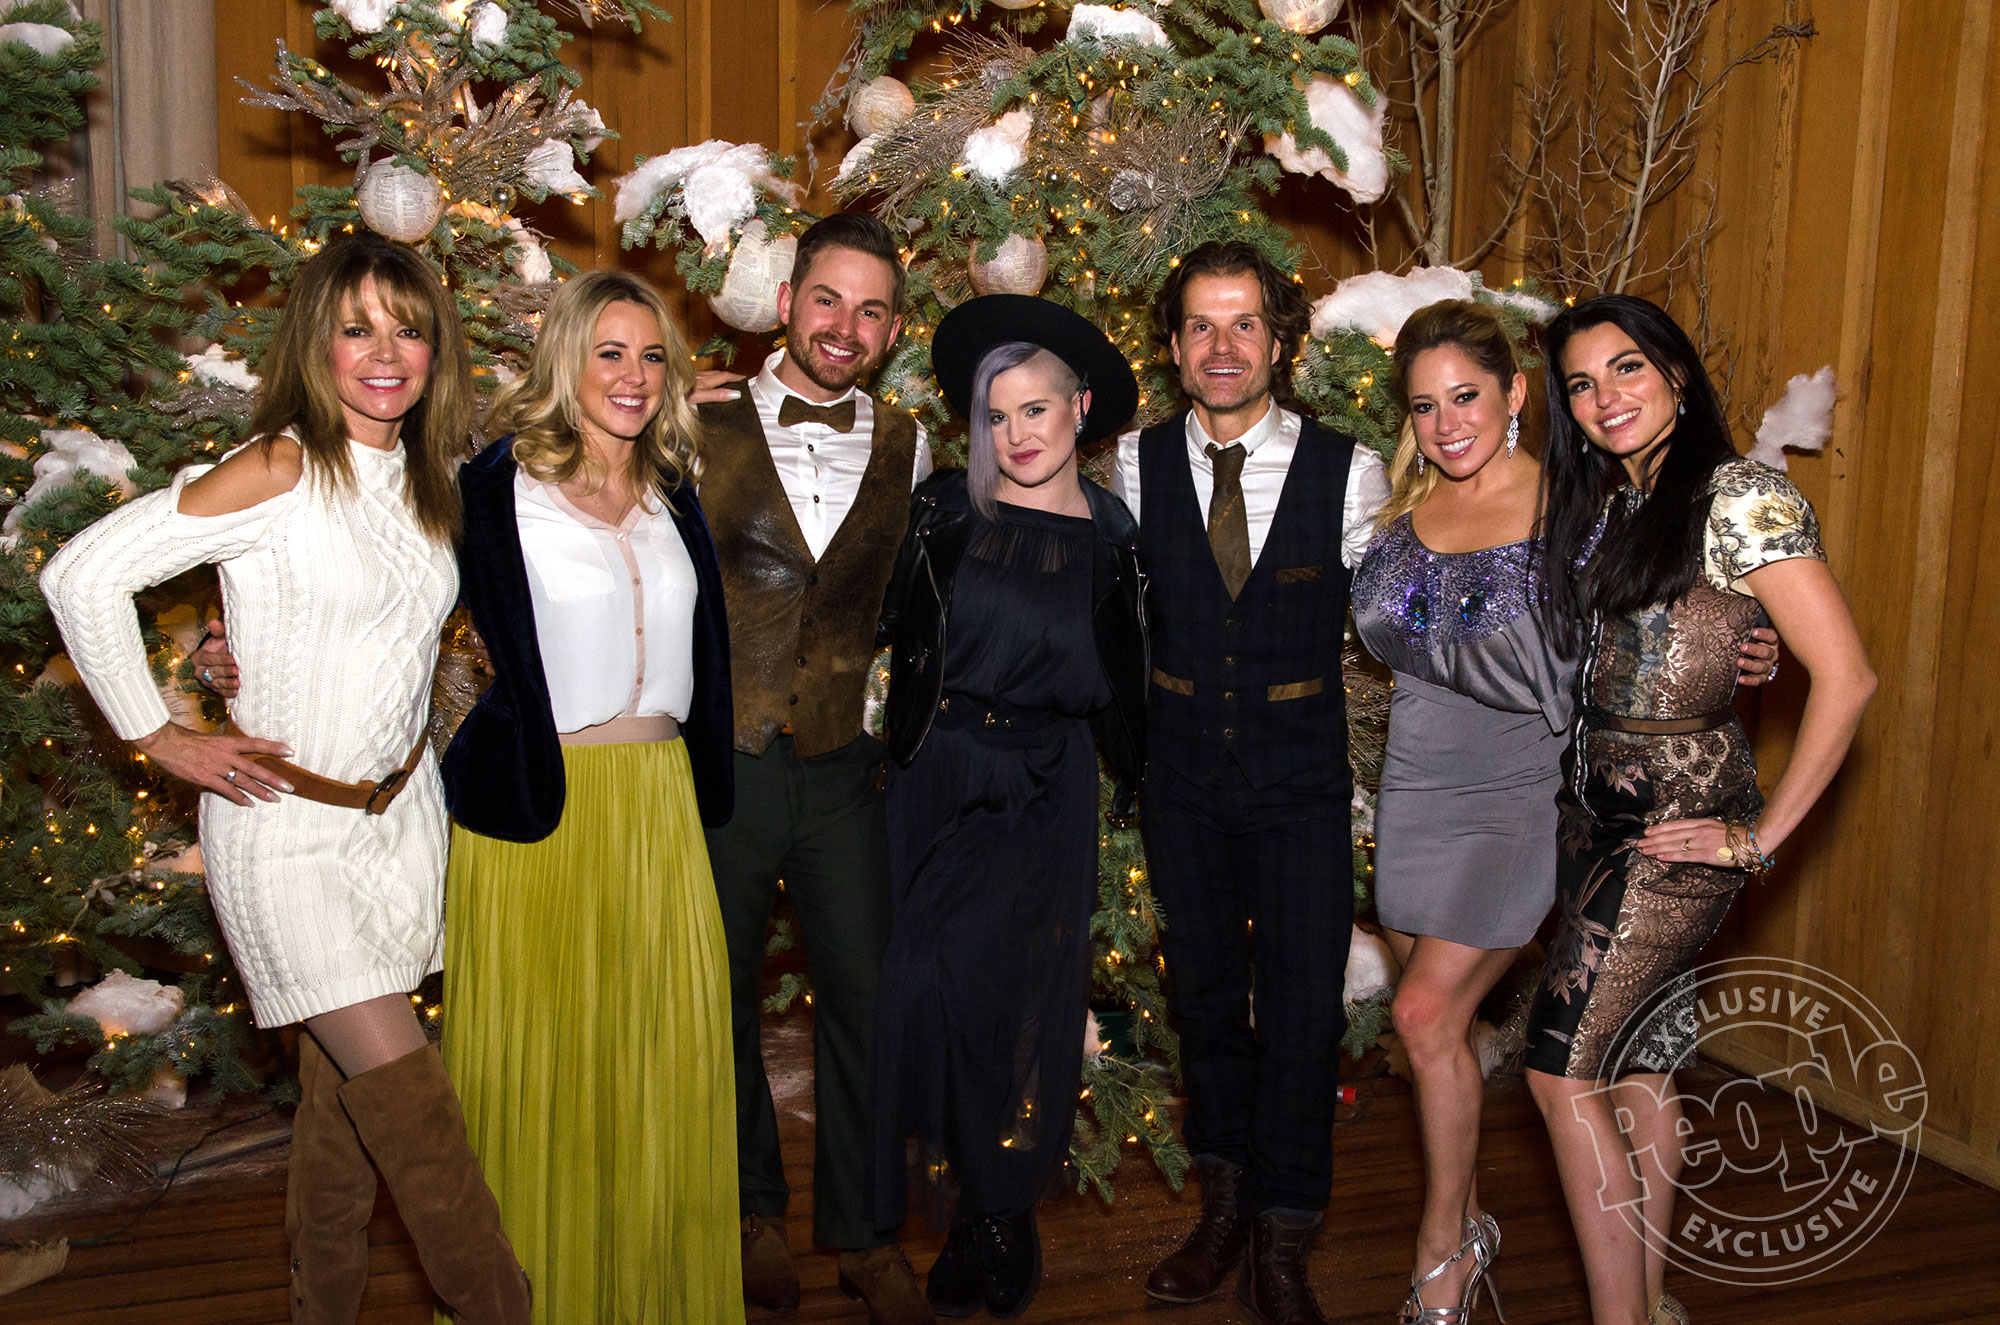 Wedding of Louis van Amstel and Joshua Lancaster, Sunday, January 8, 2017. Sundance Here's that photo L to R: Mary-Margaret Humes, Chelsie Hightower, Joshua, Kelly Osbourne, Louis, Sabrina Bryan, Ashley delgrosso-costa† credit: © 2017 Rachel Giese Photography Sent to Patrick by Louis' reps: Jay Schwartz Javier Delgado Contact them for reuse. Photographer contact info, if needed is: rachelgiesecreative@gmail.com